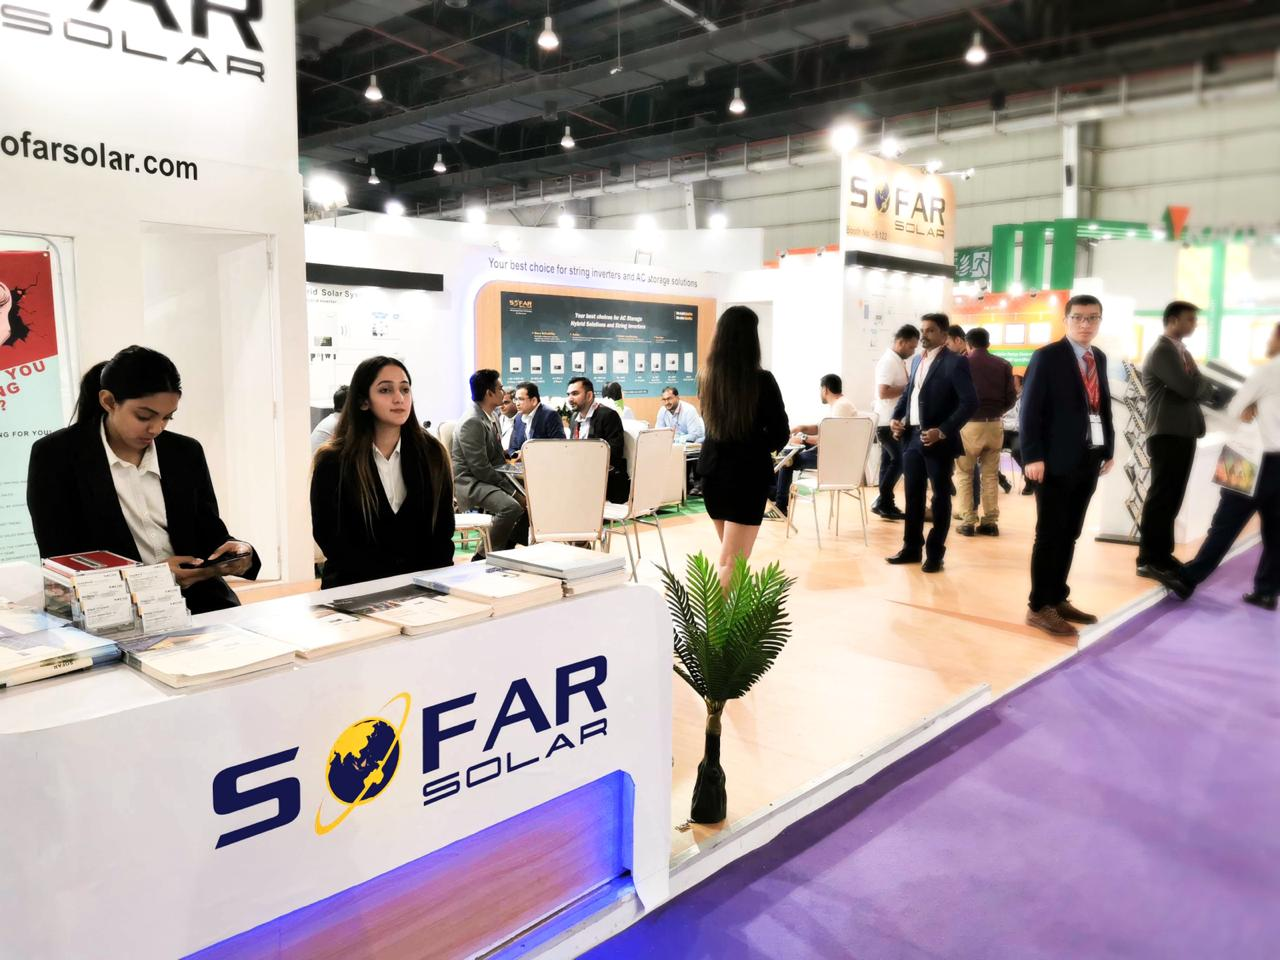 Sofarsolar attended REI and Showed the Newest product,Improve brand recognition